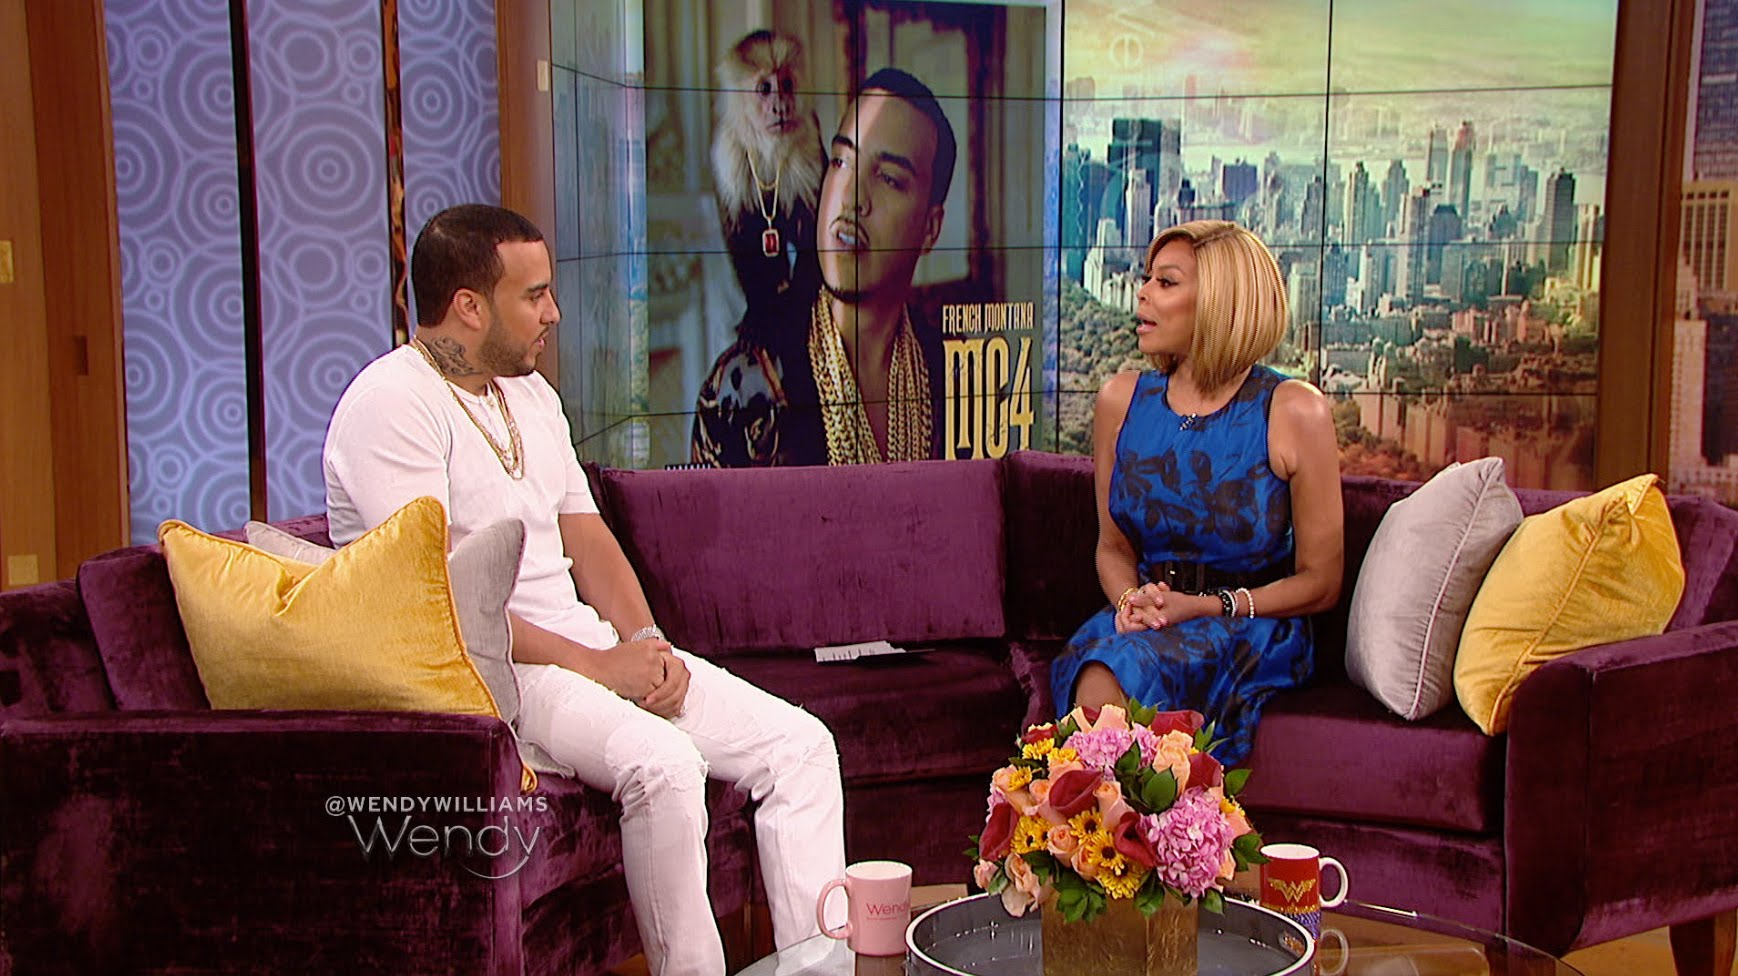 French Montana Talks MC4 & Addresses Claims Made by Chinx's Mother